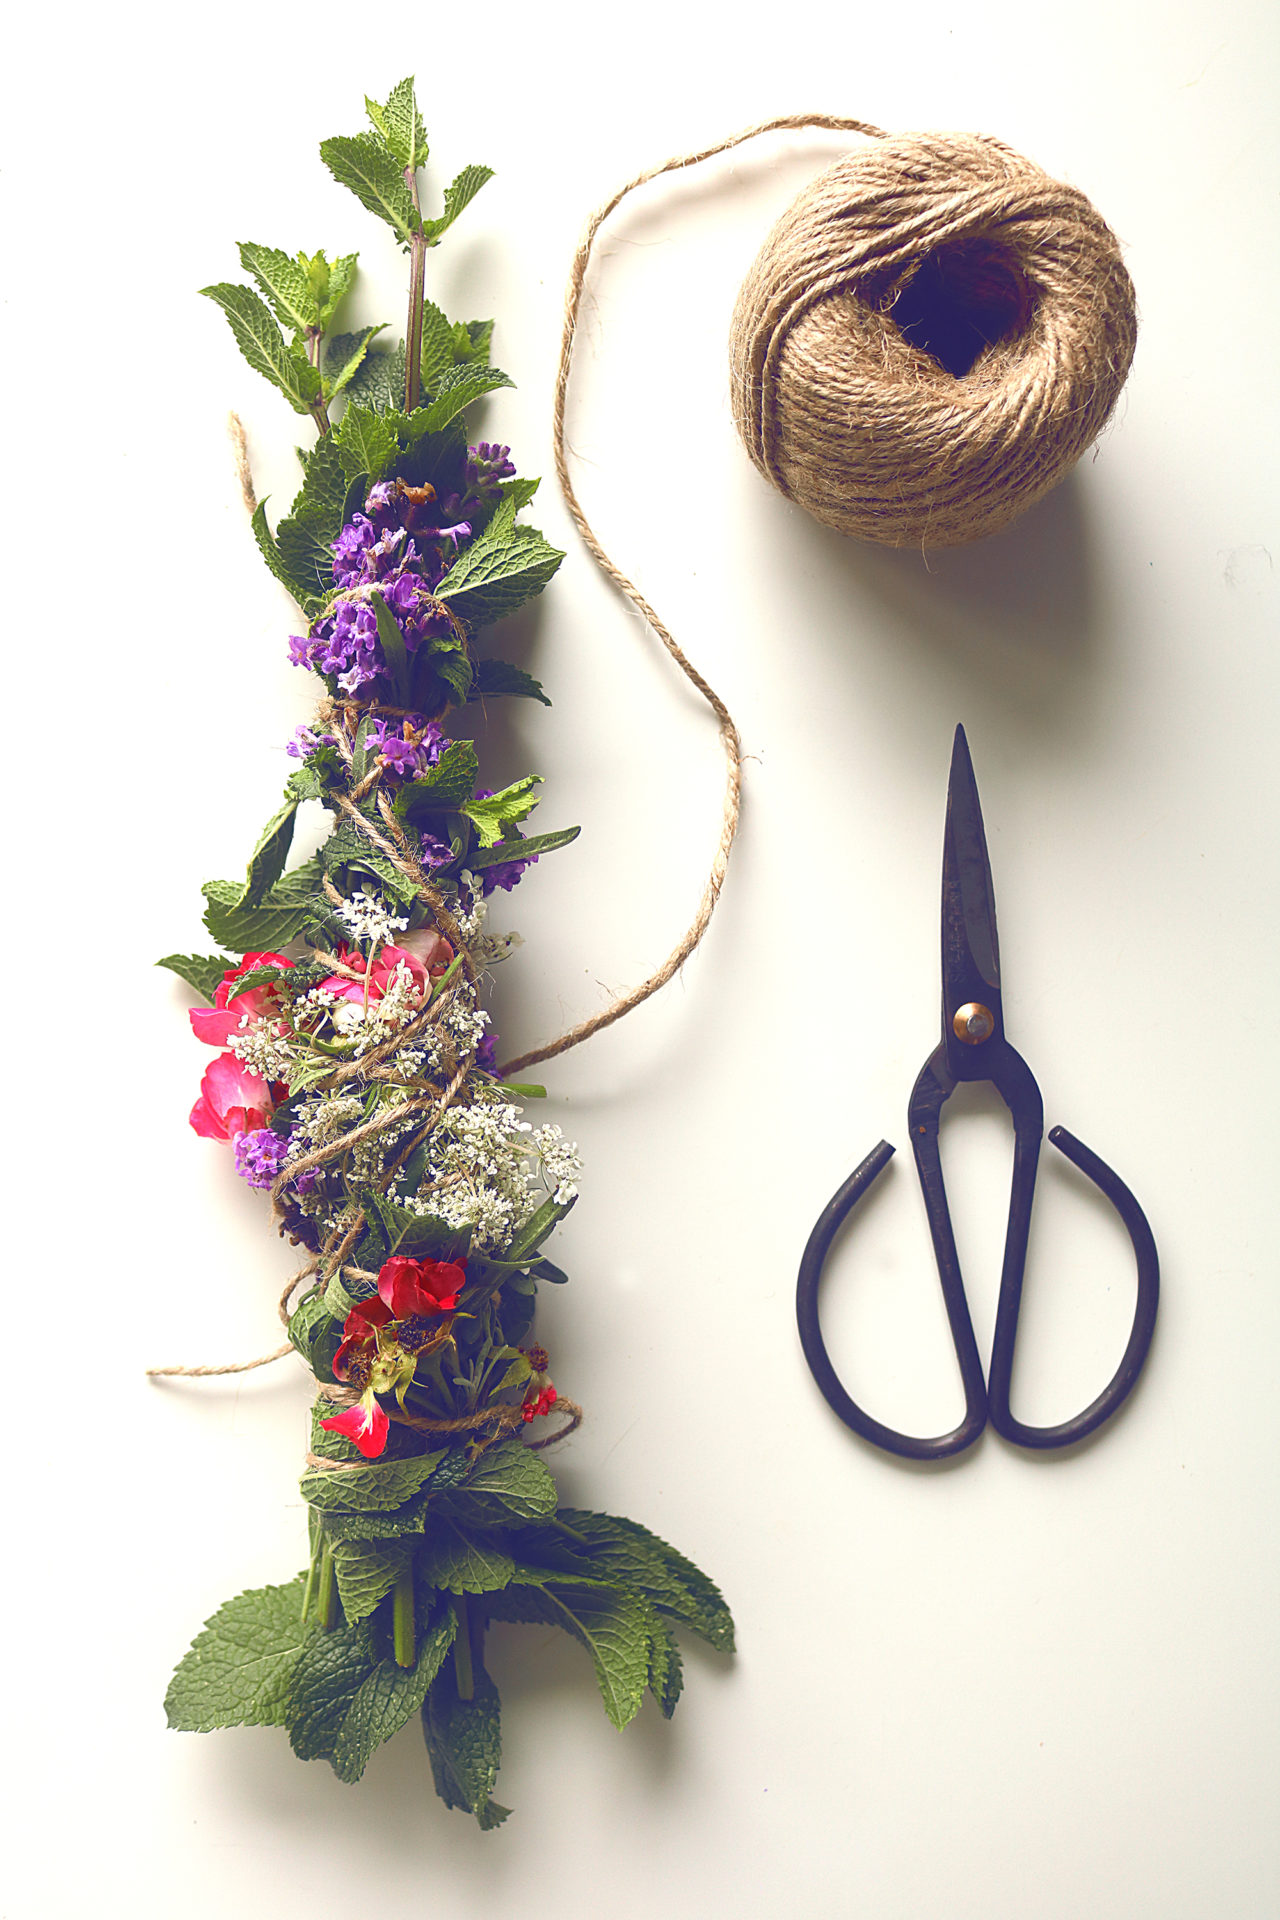 Have you seen all those beautiful incense wands on Etsy? They're super easy to make from garden herbs and flowers. Here's how.